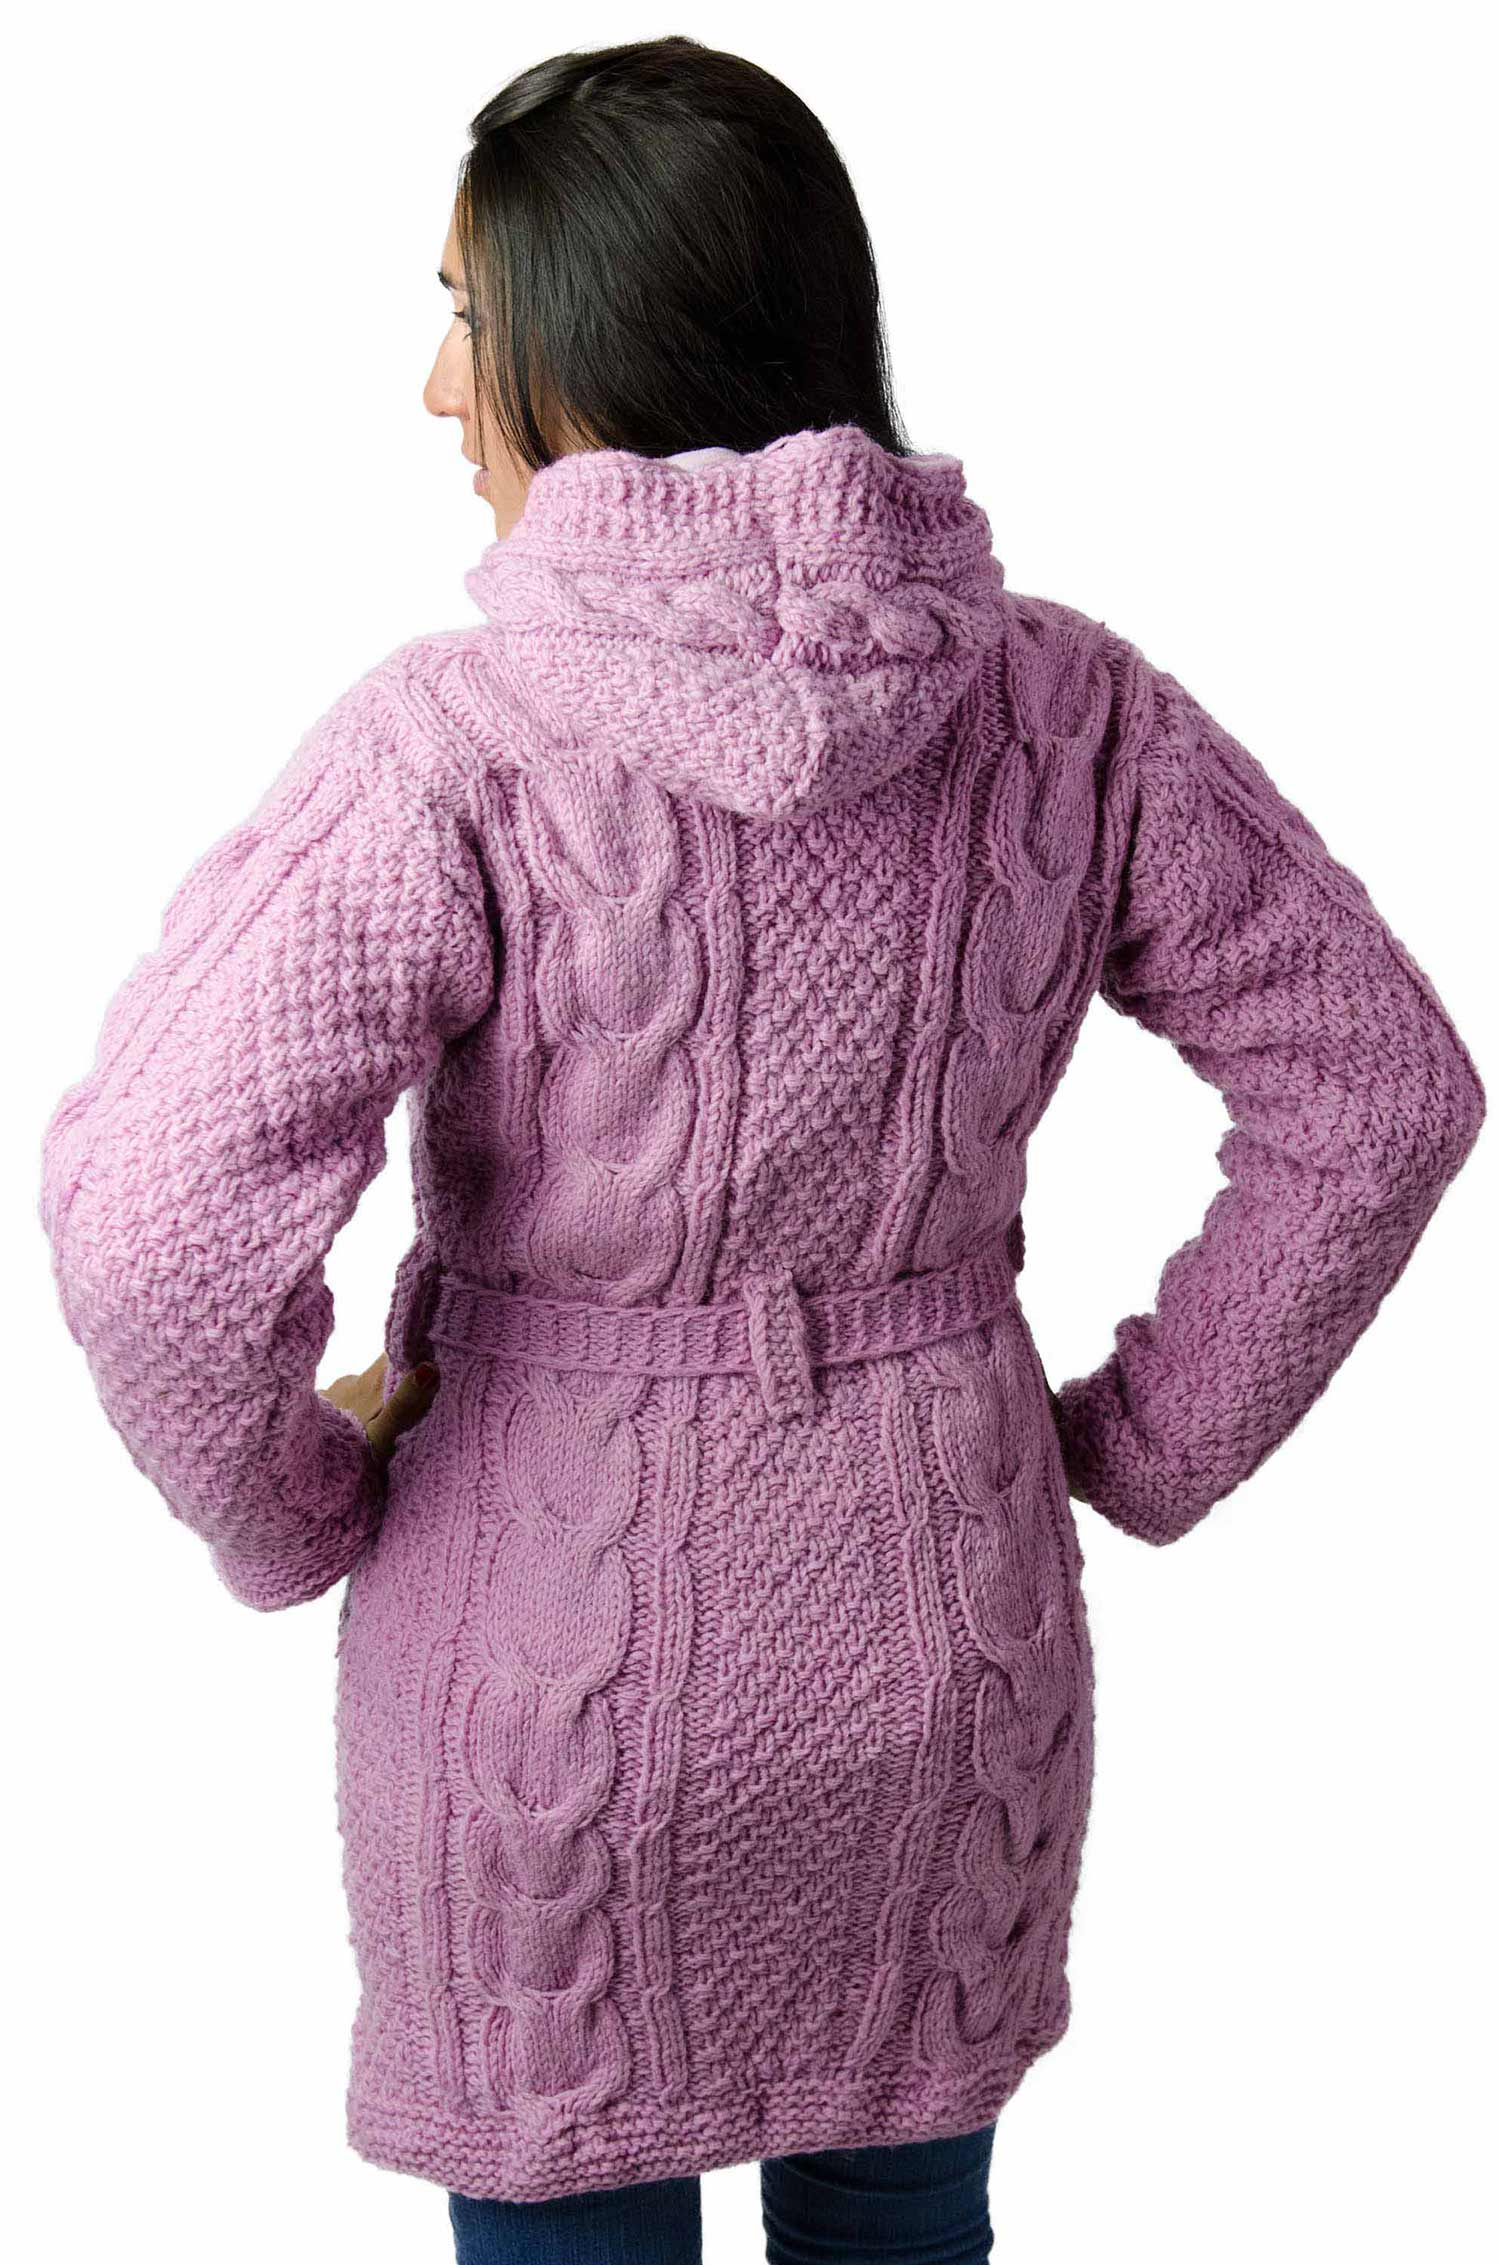 Wool Cable Knit Himalayan Mountain Jacket – Full Length Quite Pink